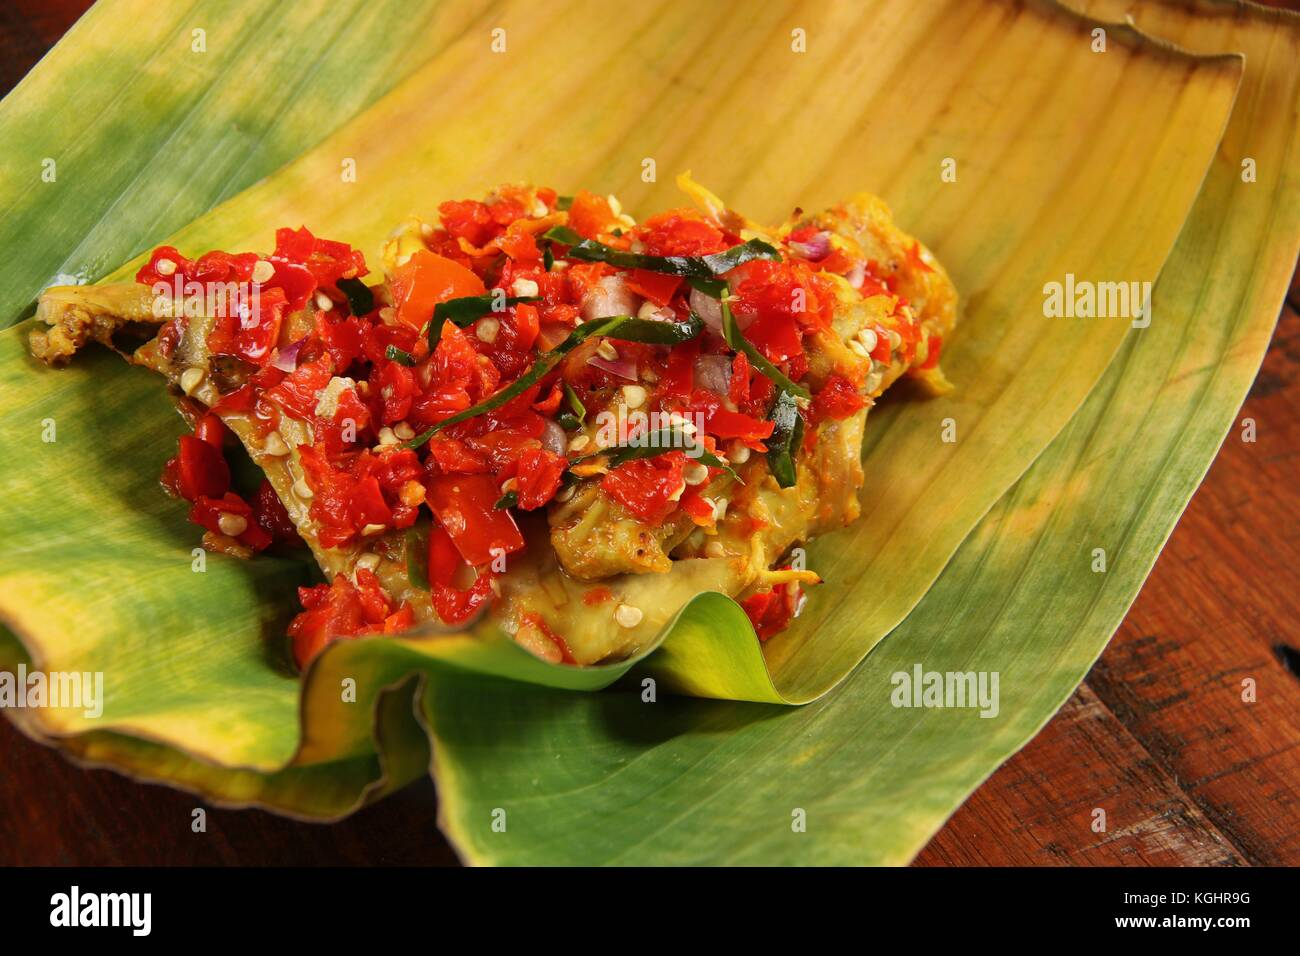 Ayam Balado, Padang Chicken with Crushed Red Chili Peppers Stock Photo